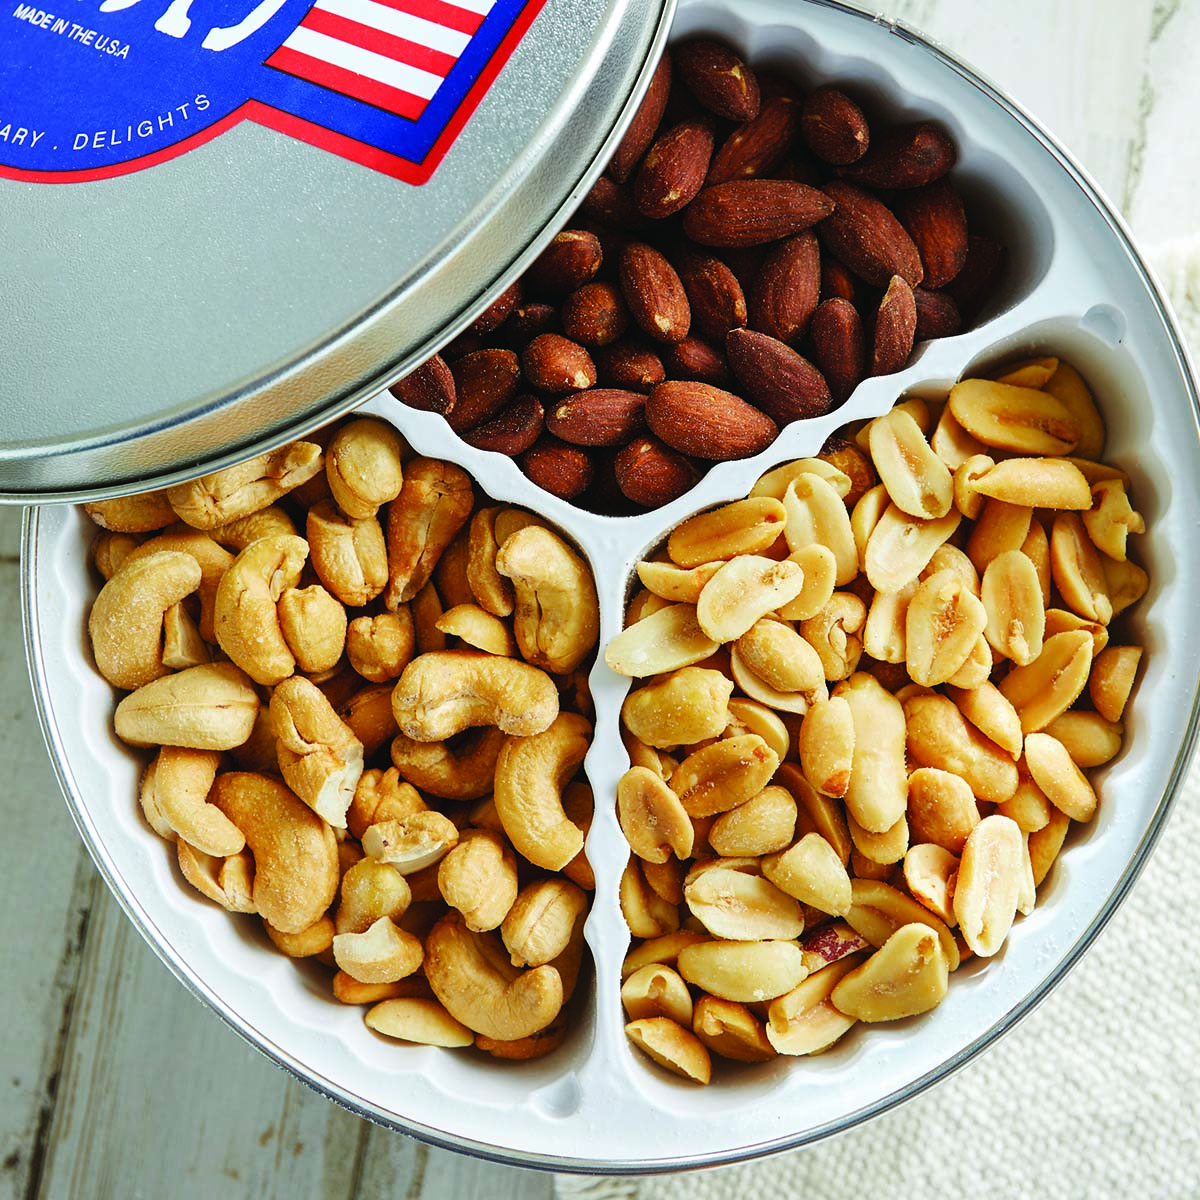 - Roasted and Salted Nut Sampler Tin